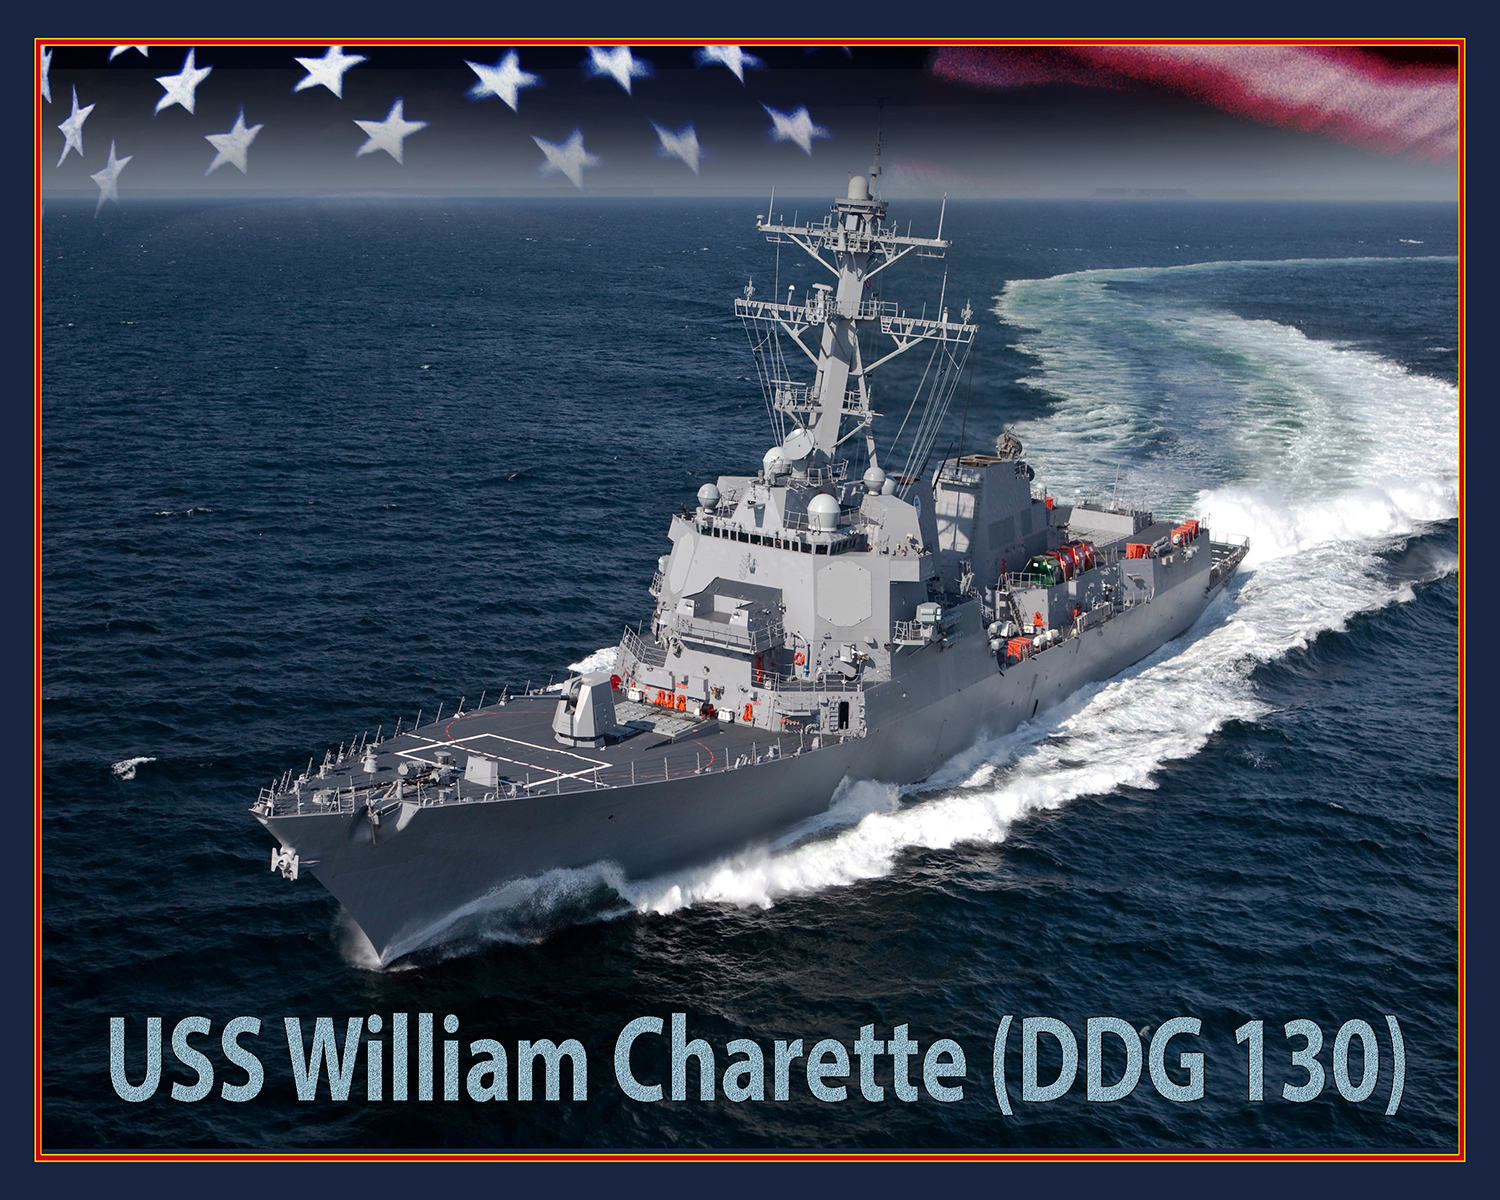 An artist rendering of the future Arleigh Burke-class guided-missile destroyer USS William Charette (DDG 131). (U.S. Navy photo illustration)